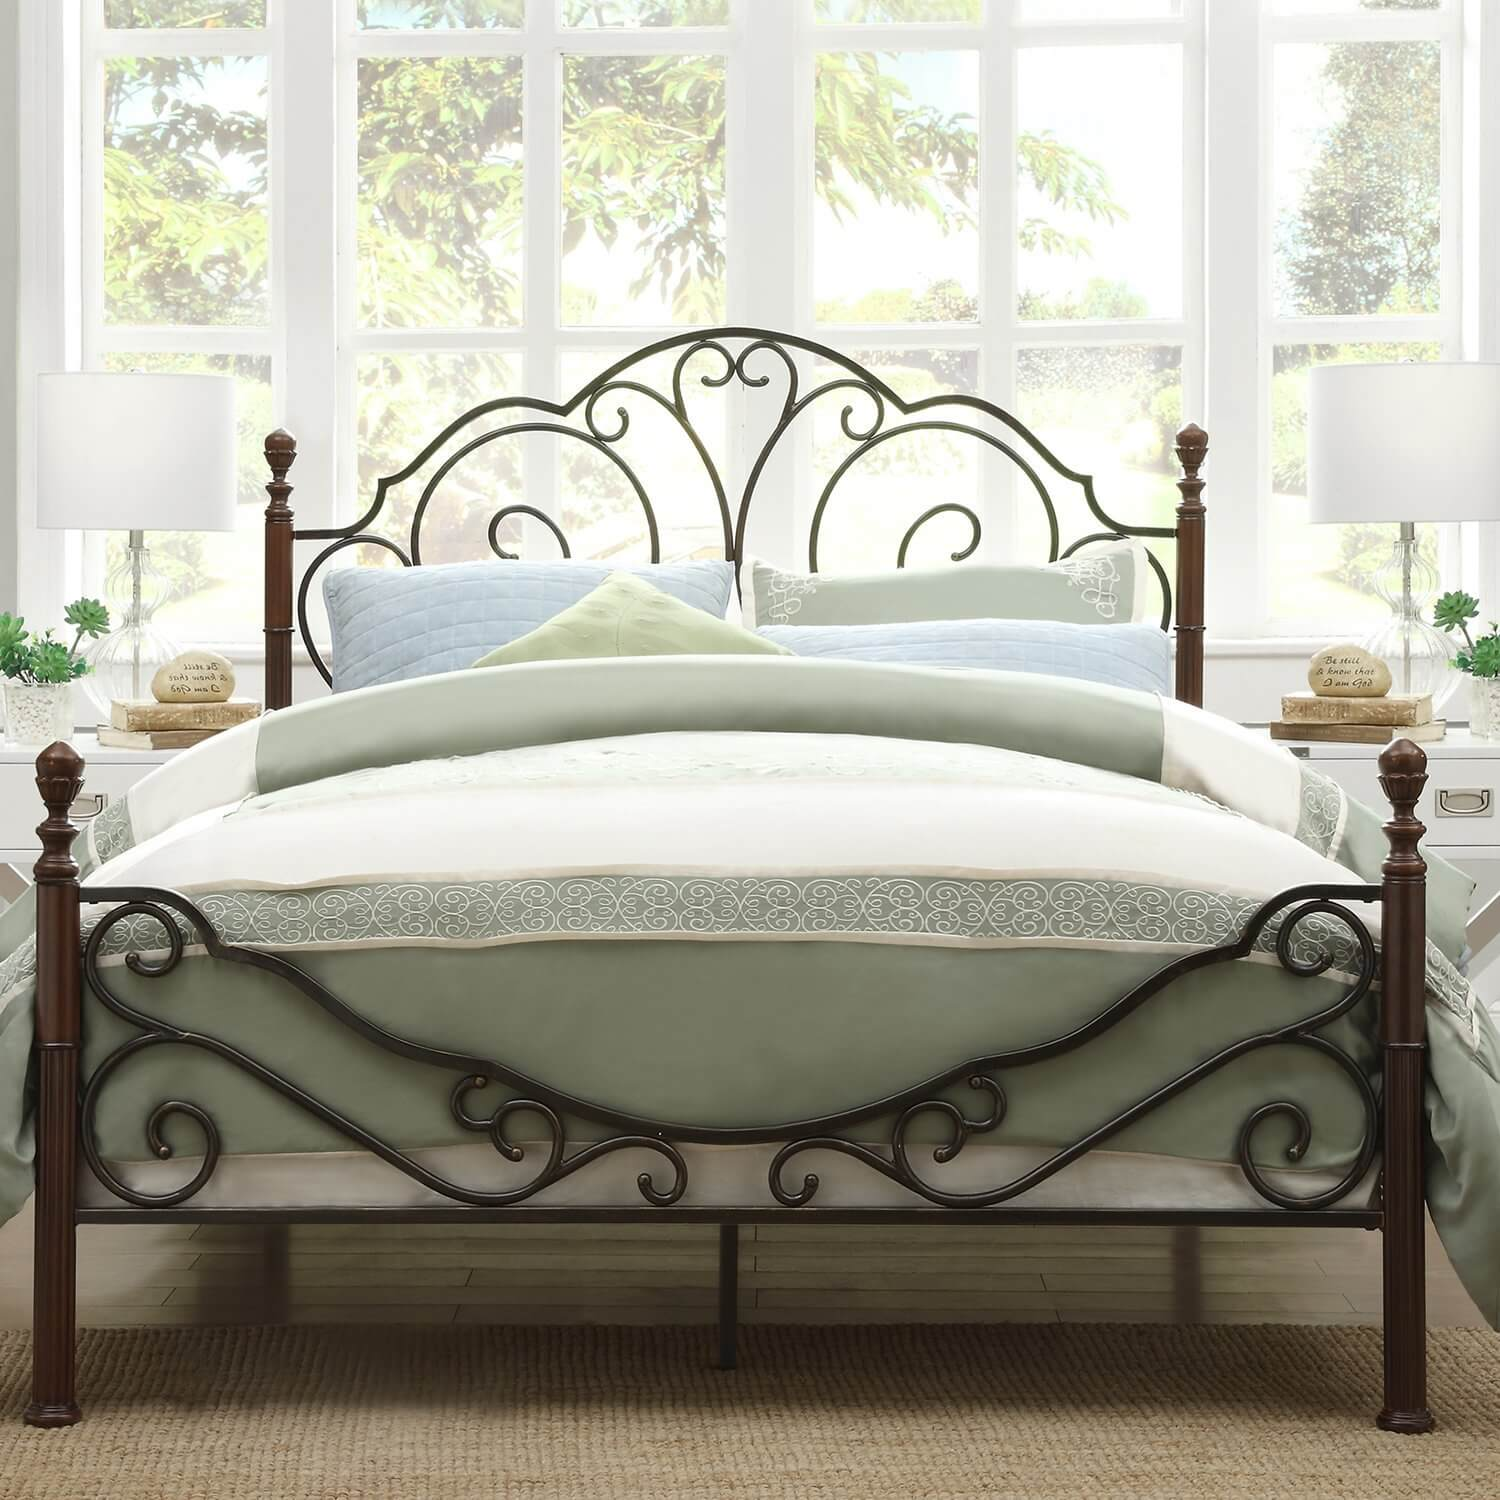 amazing wrought iron beds that can be found on amazon count me in - Wrought Iron Bed Frames